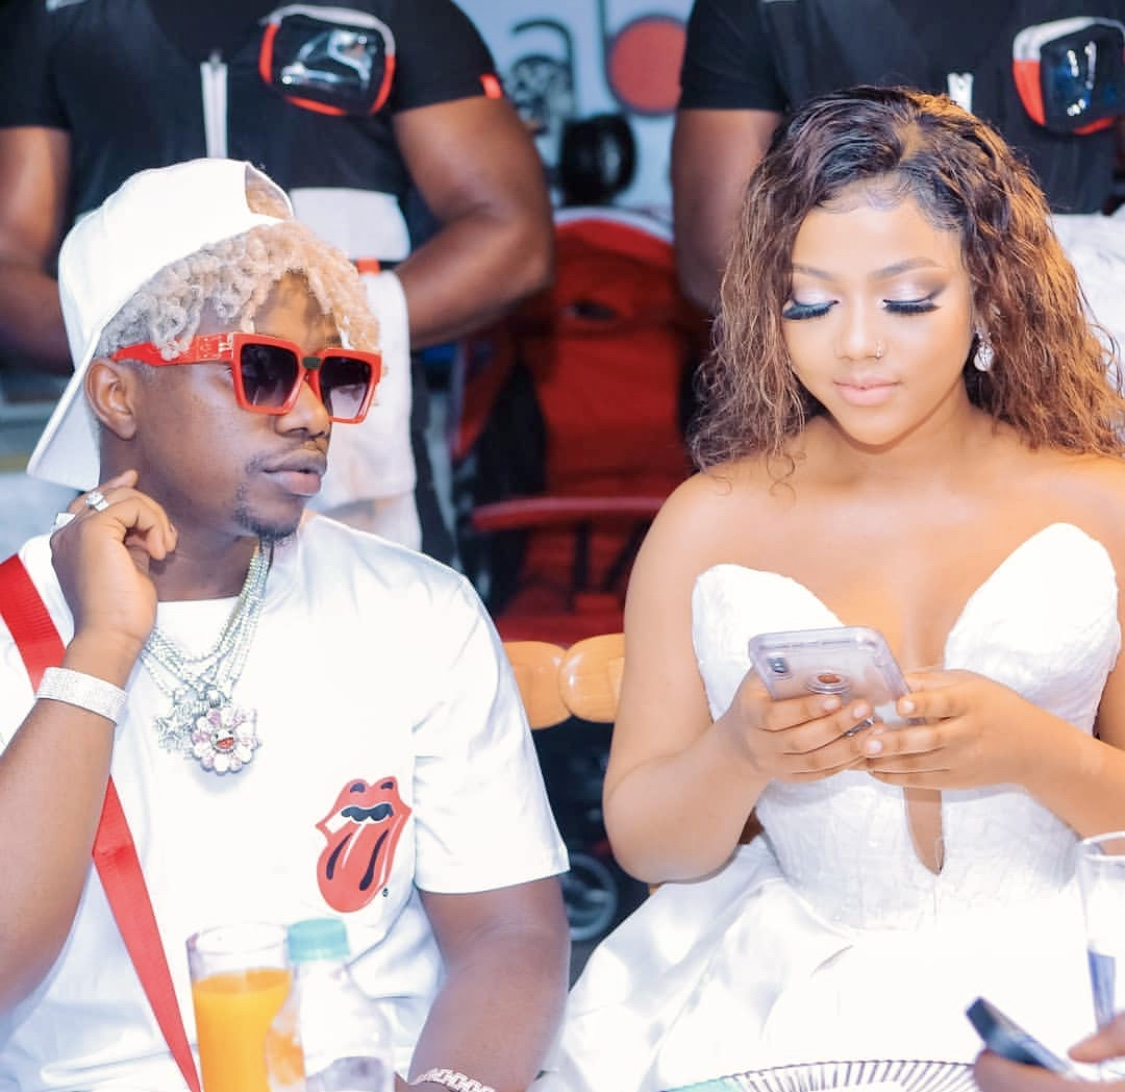 Drama! Rayvanny accused of cheating on his baby mama with